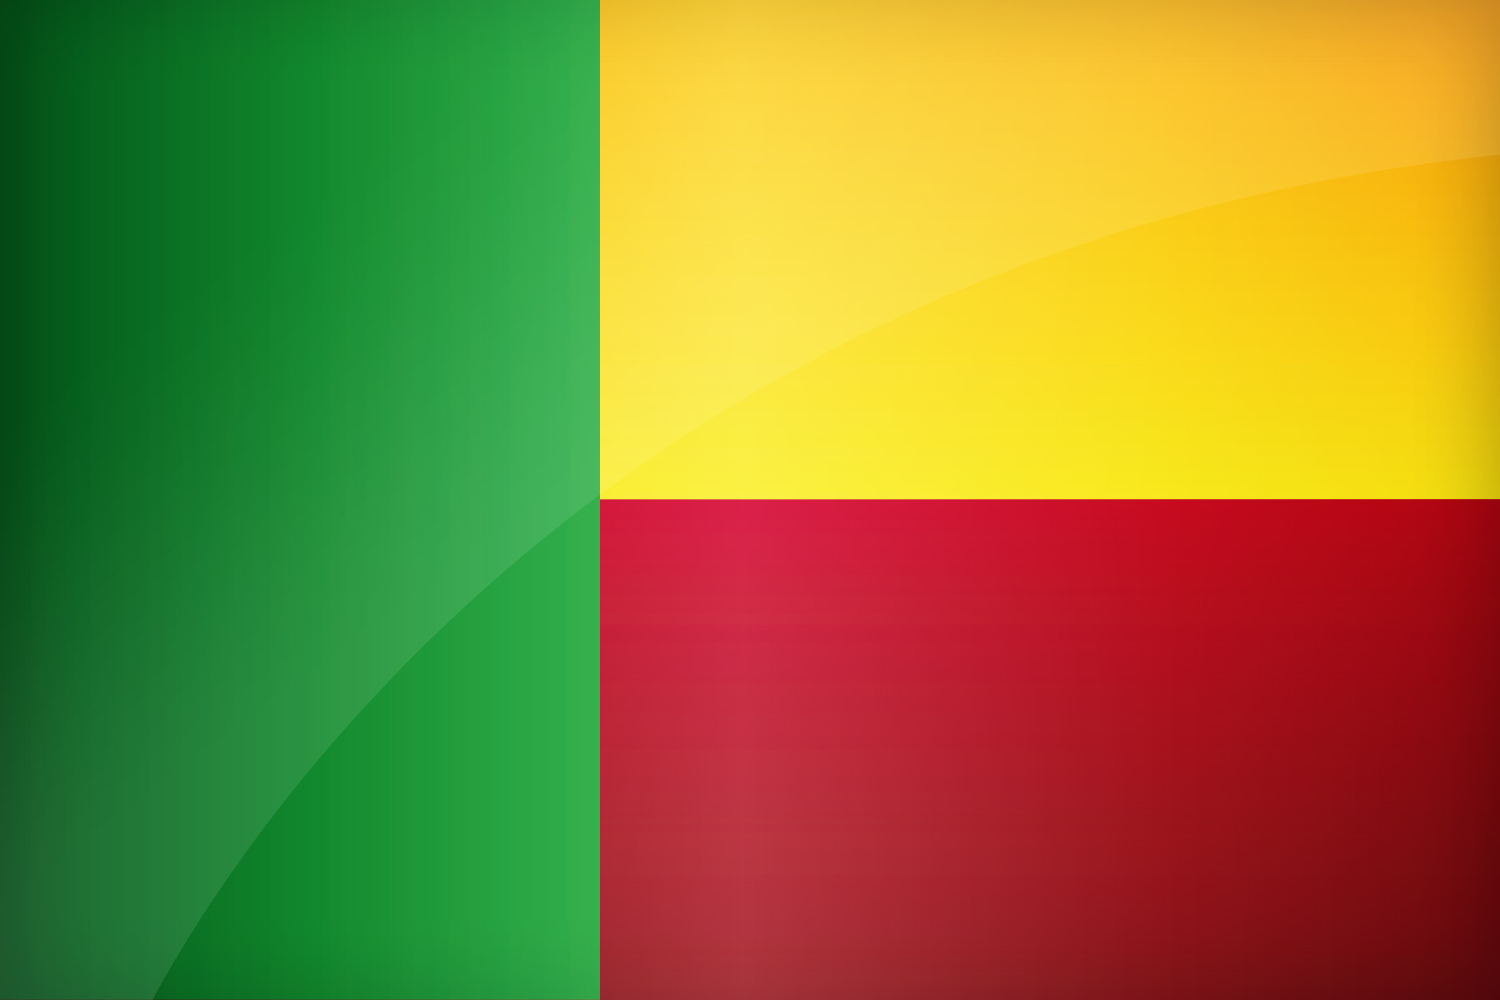 Benin Flag and Description